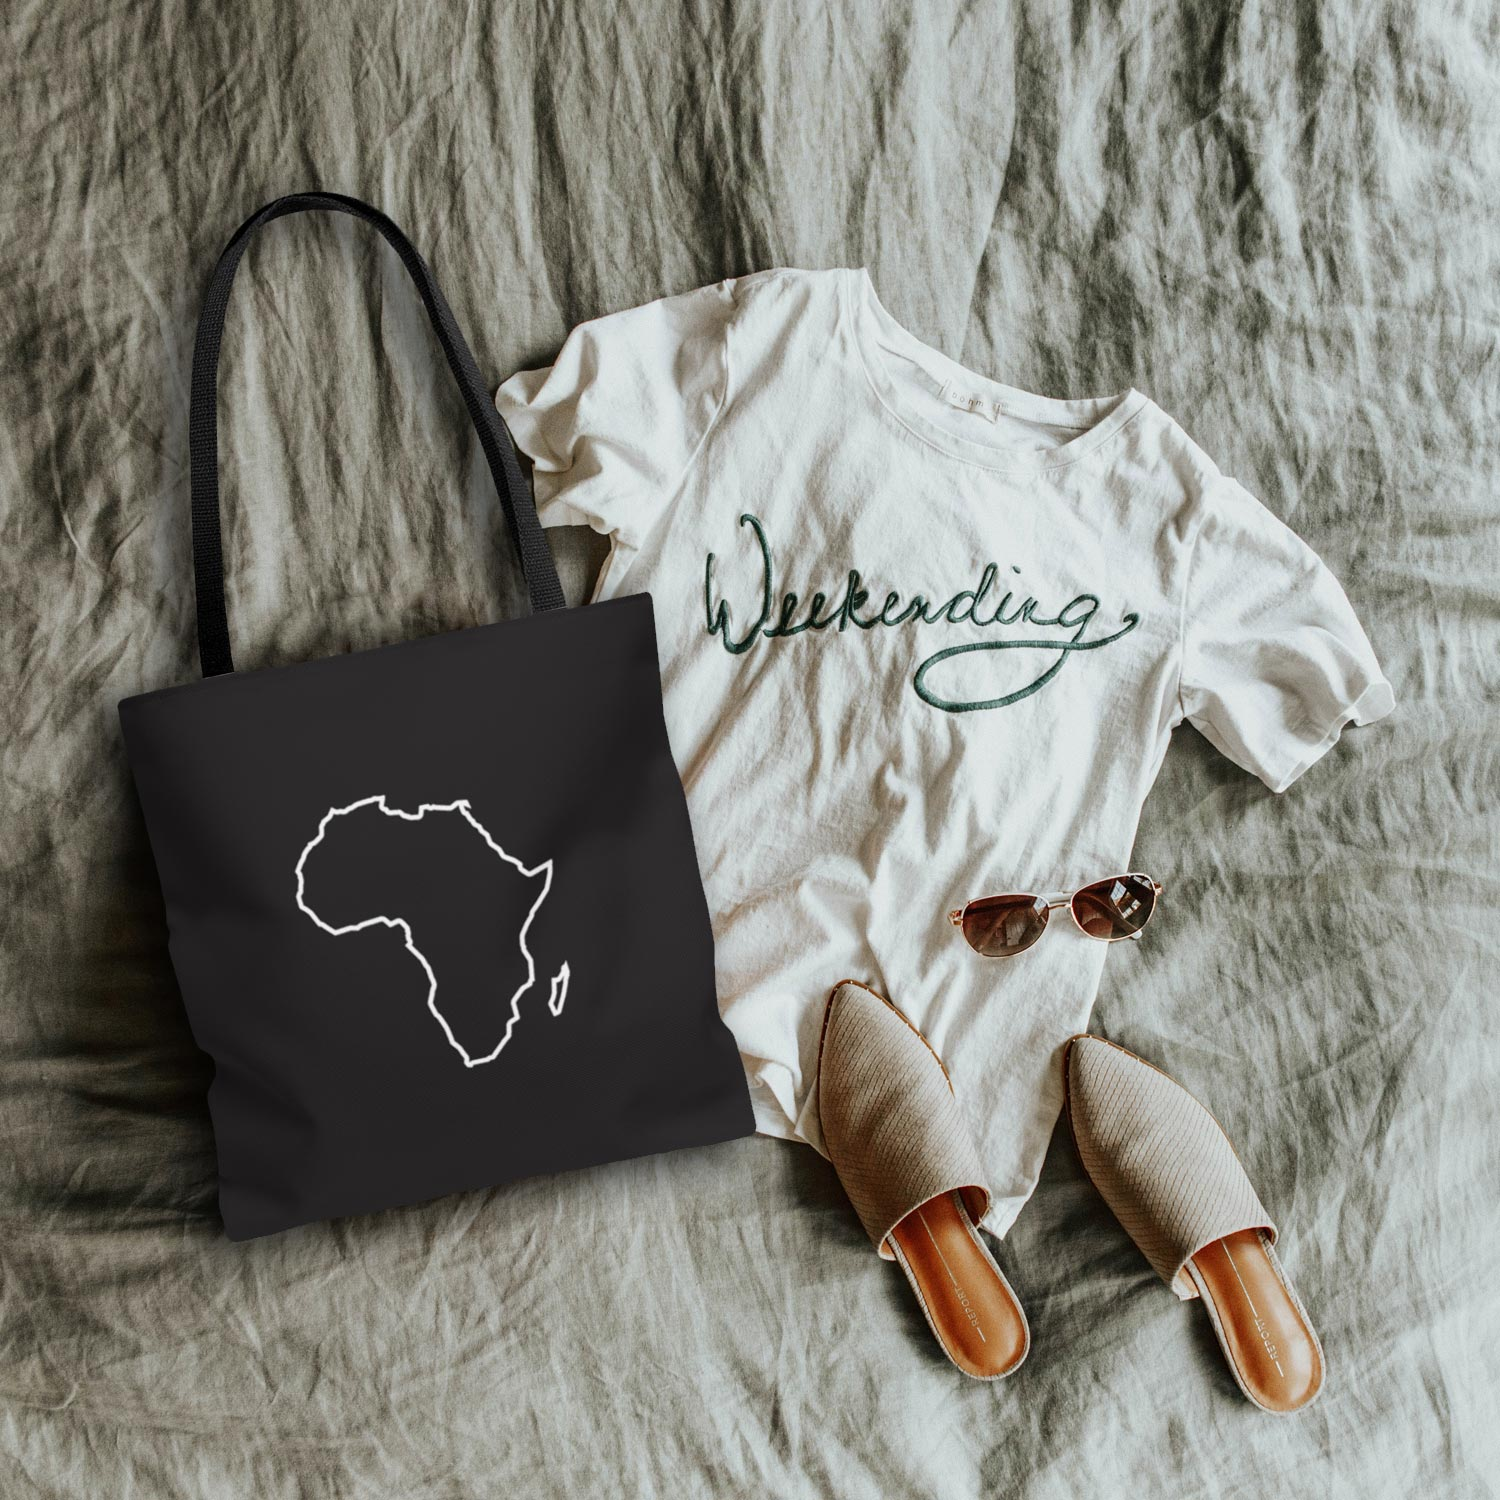 Minimalist Black Tote with Africa Silhouette